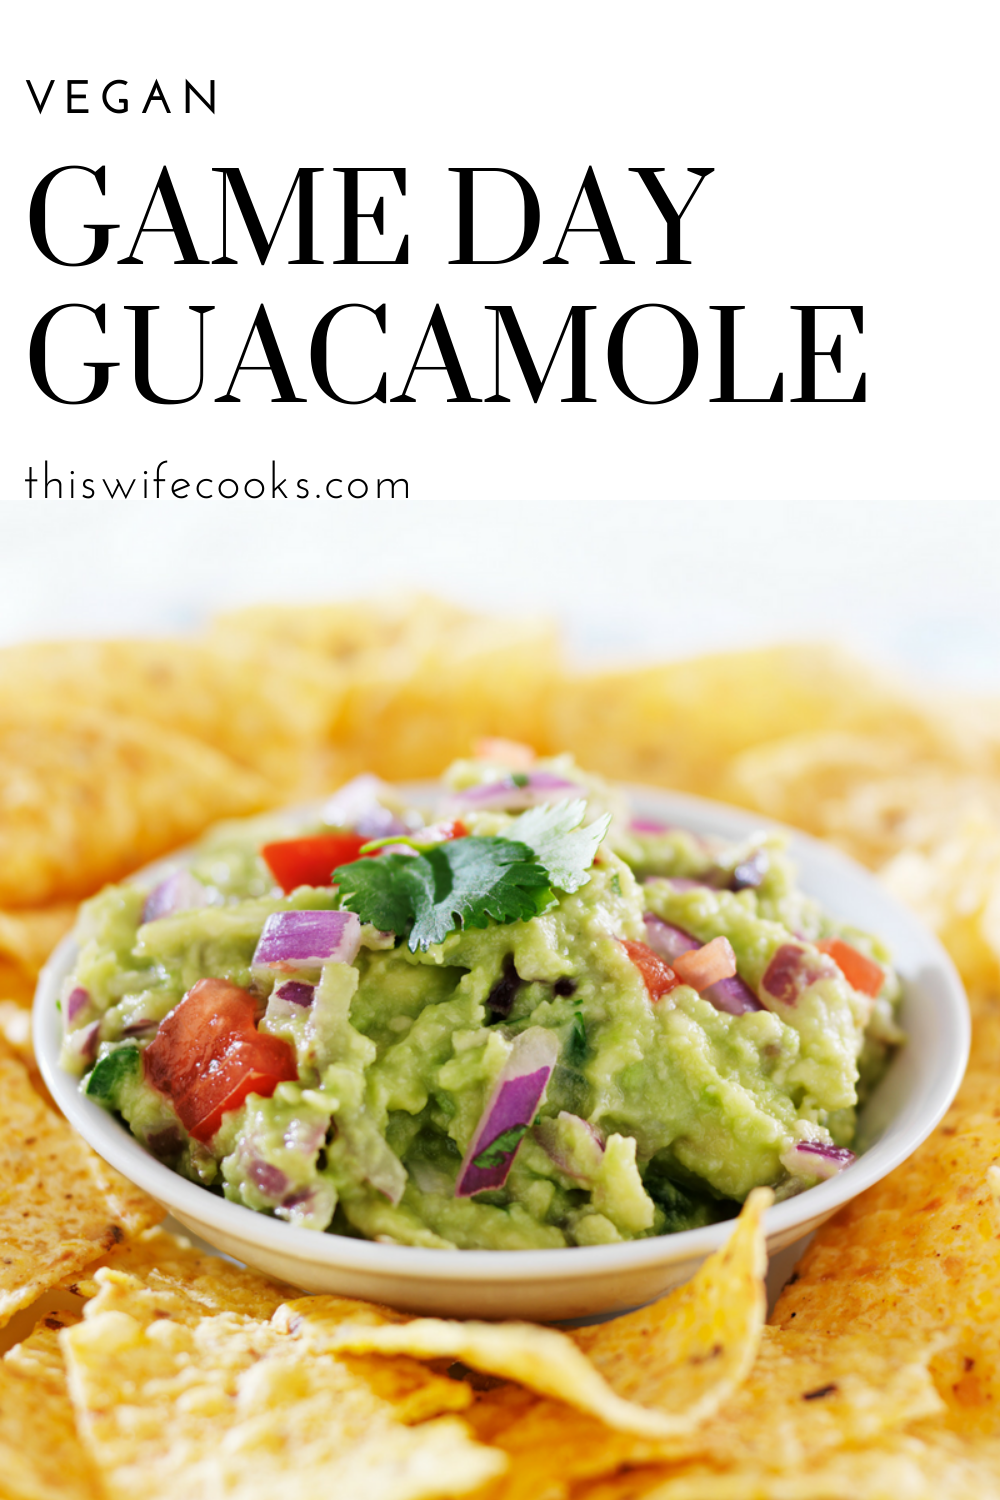 Game Day Guacamole - You just can't beat the flavor of fresh!  Whip up a quick and easy batch of fresh guacamole in minutes!  via @thiswifecooks